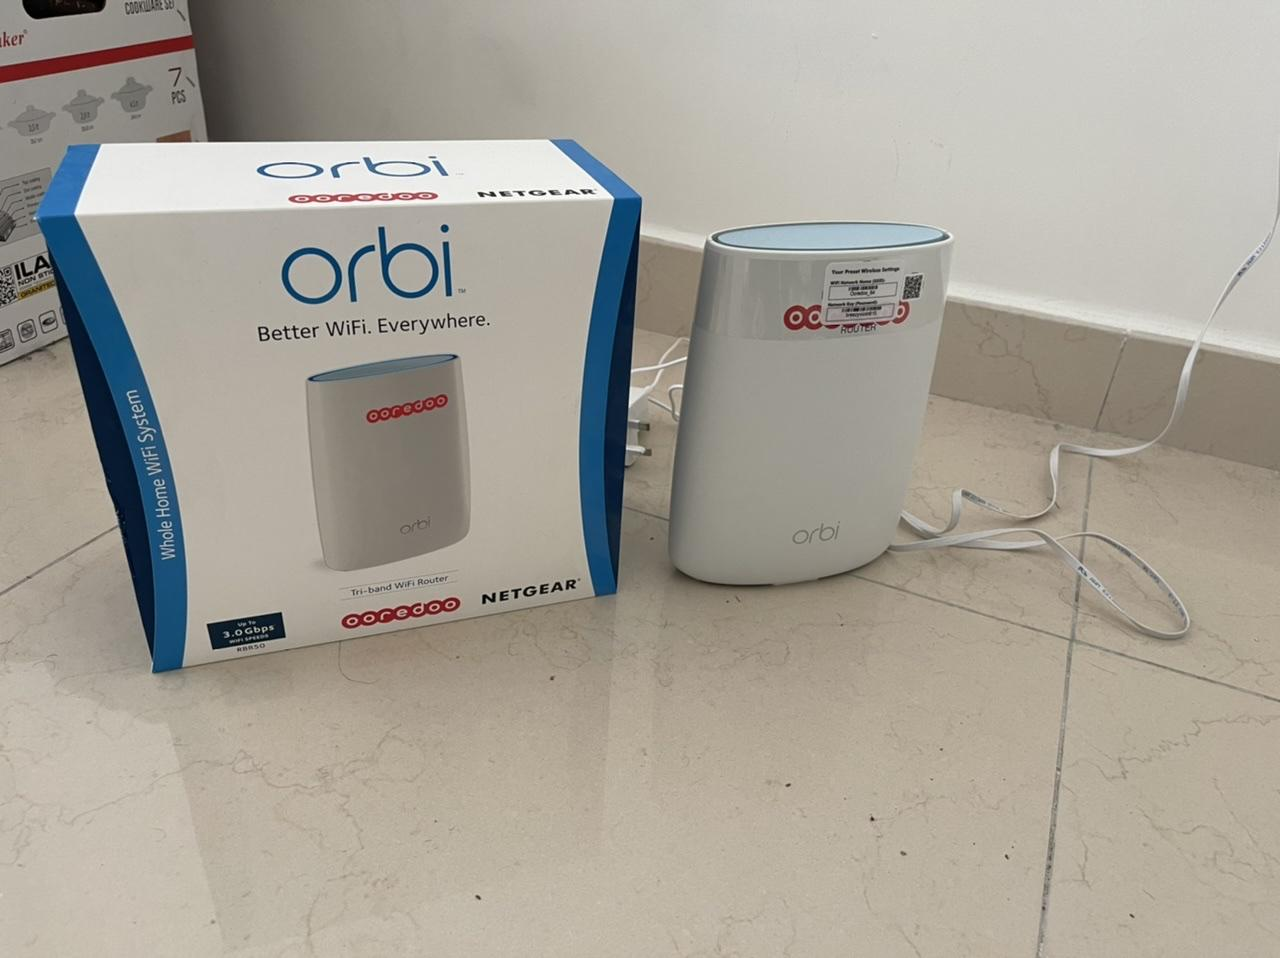 ORBI wifi router RBR 50 up to 3.0 Gbps Netgear